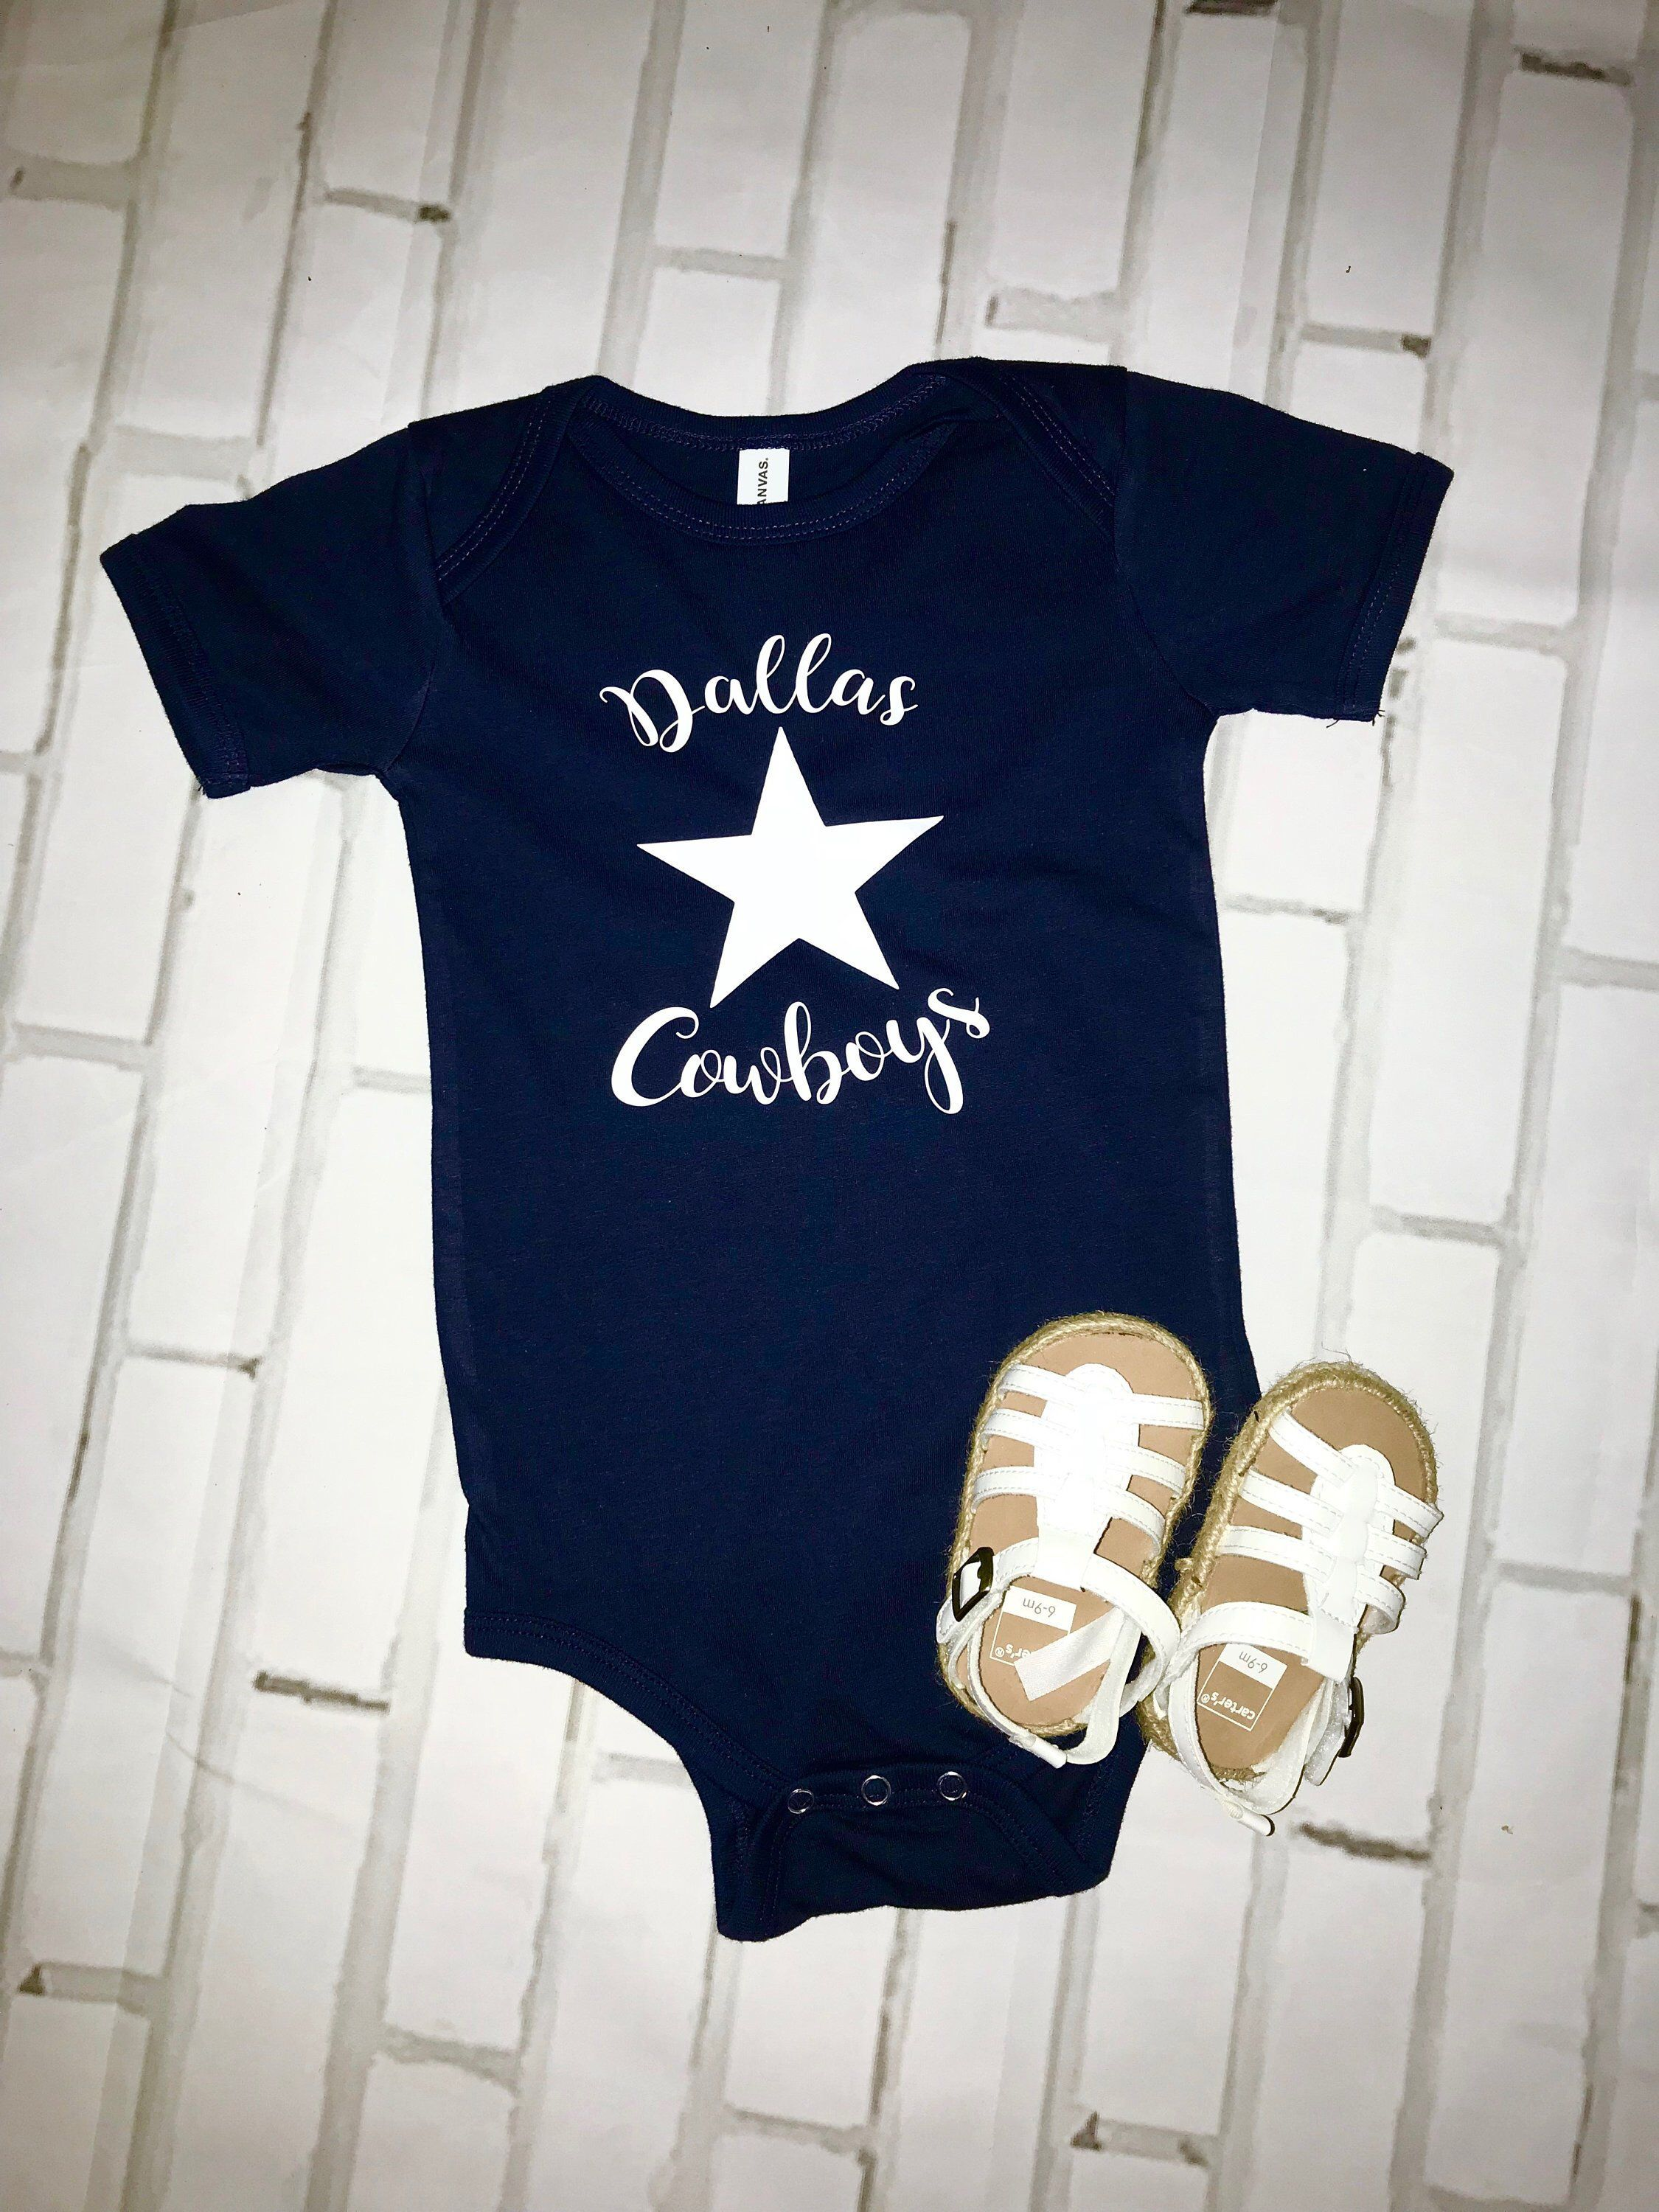 Excited to share this item from my  etsy shop  NFL sports team baby onesie! Dallas  Cowboys  clothing  children  baby  nflteam  dallascowboys  footballonesie  ... 89e519ea9